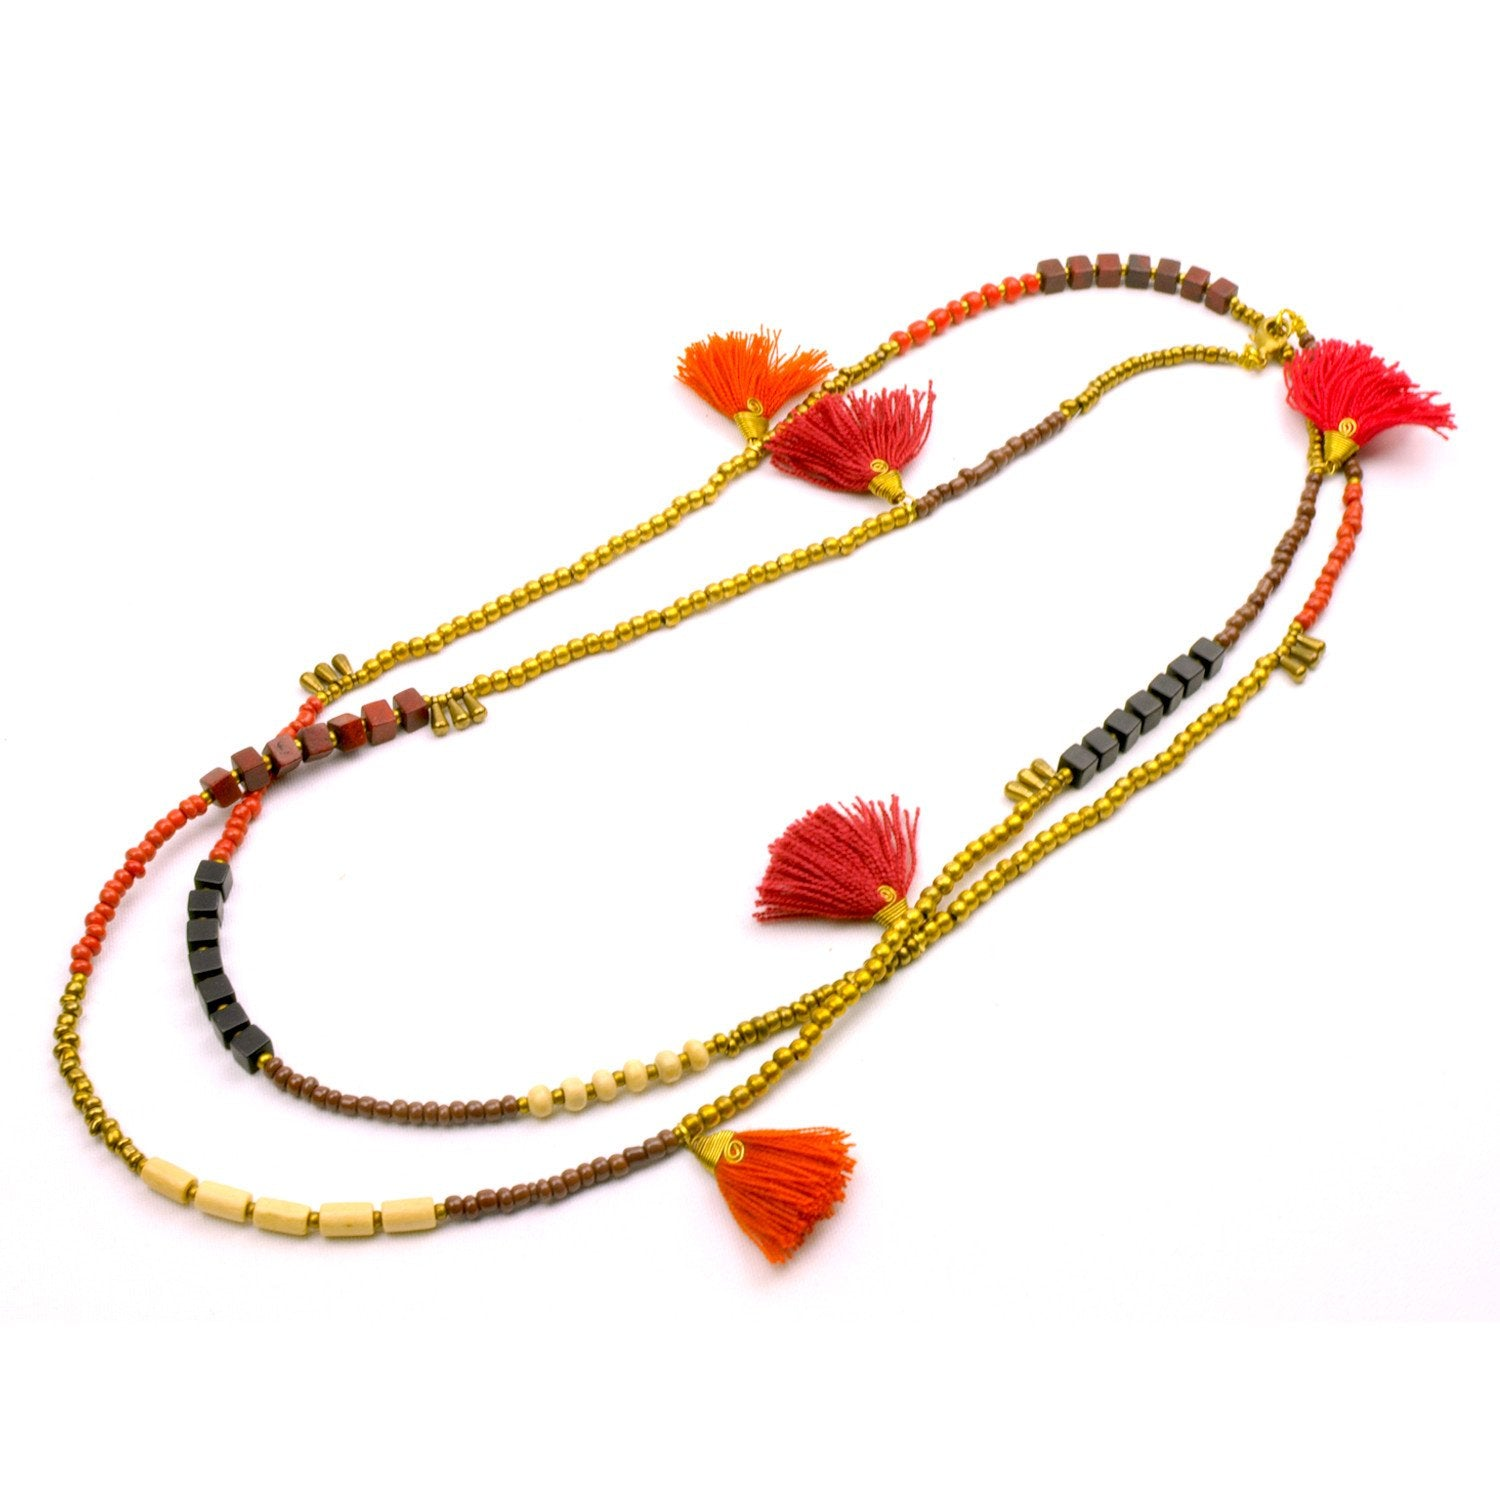 Boho Jewelry Collection Kerala Necklace, Sun